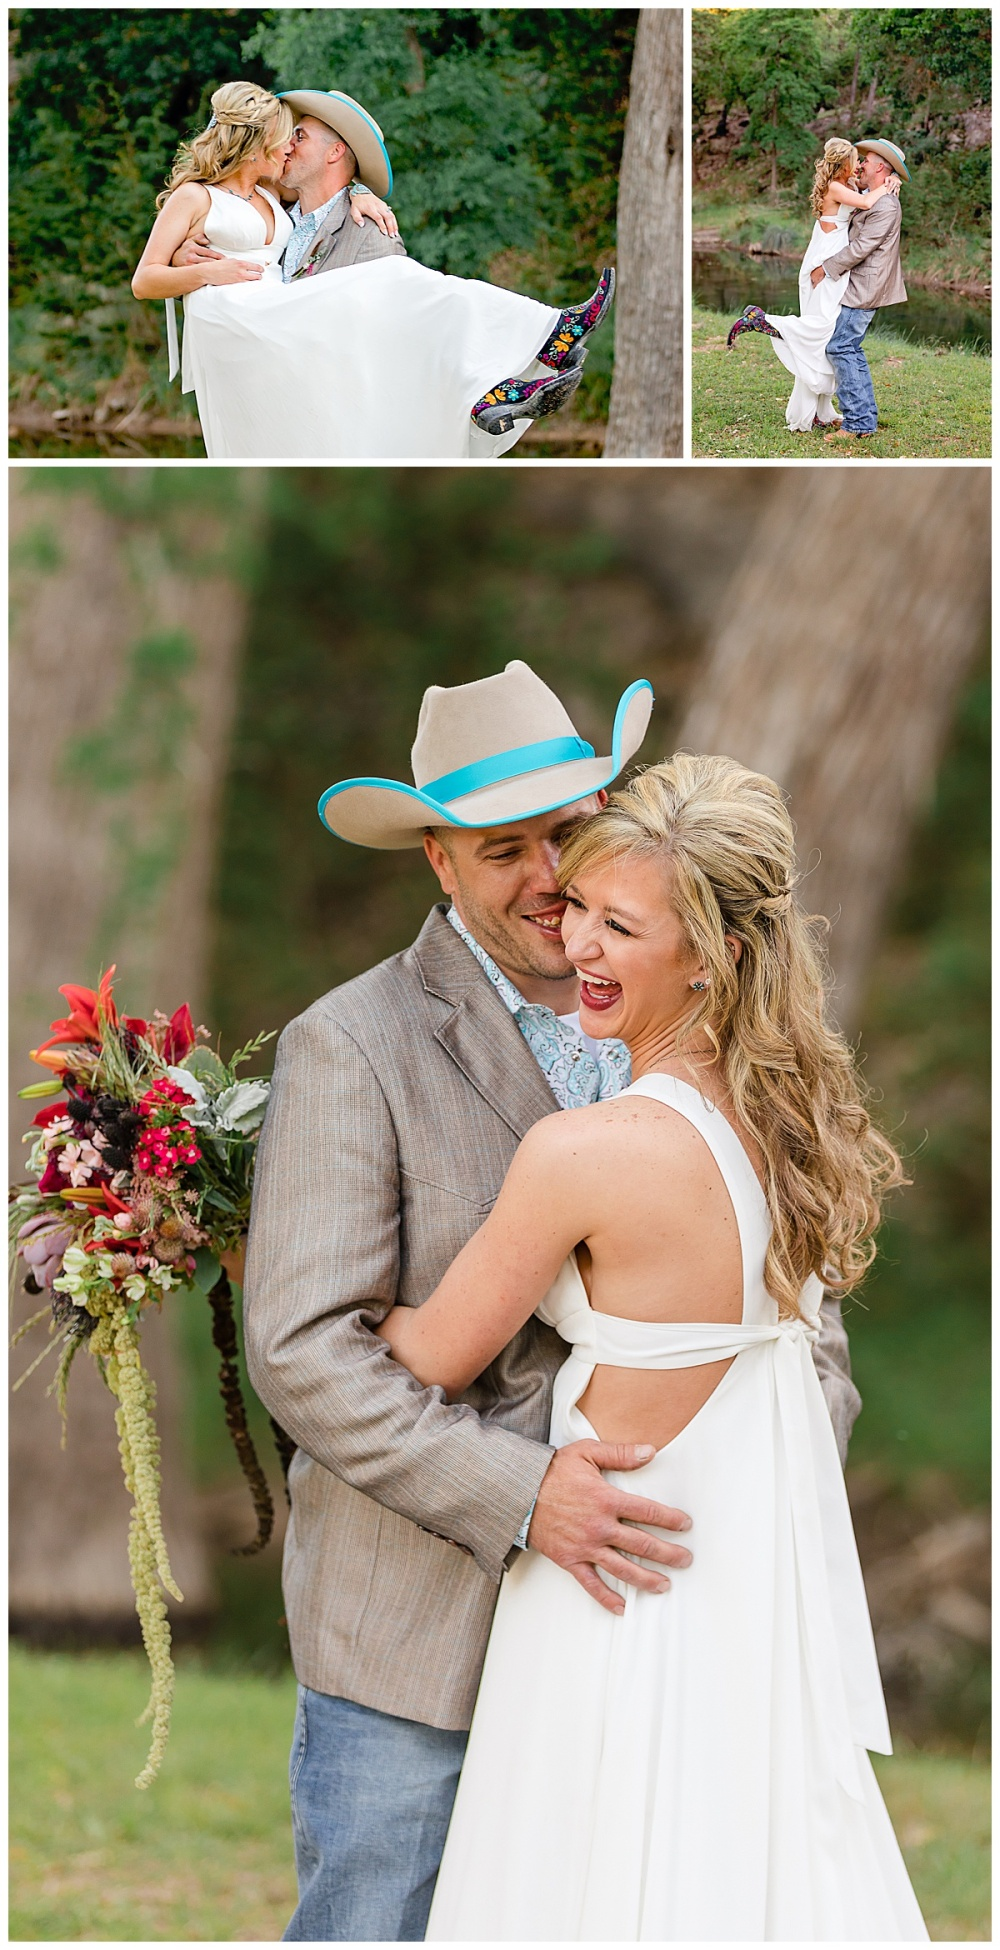 Eagle-Dancer-Ranch-Boerne-Texas-Wedding-Party-Barn-Carly-Barton-Photography_0044.jpg